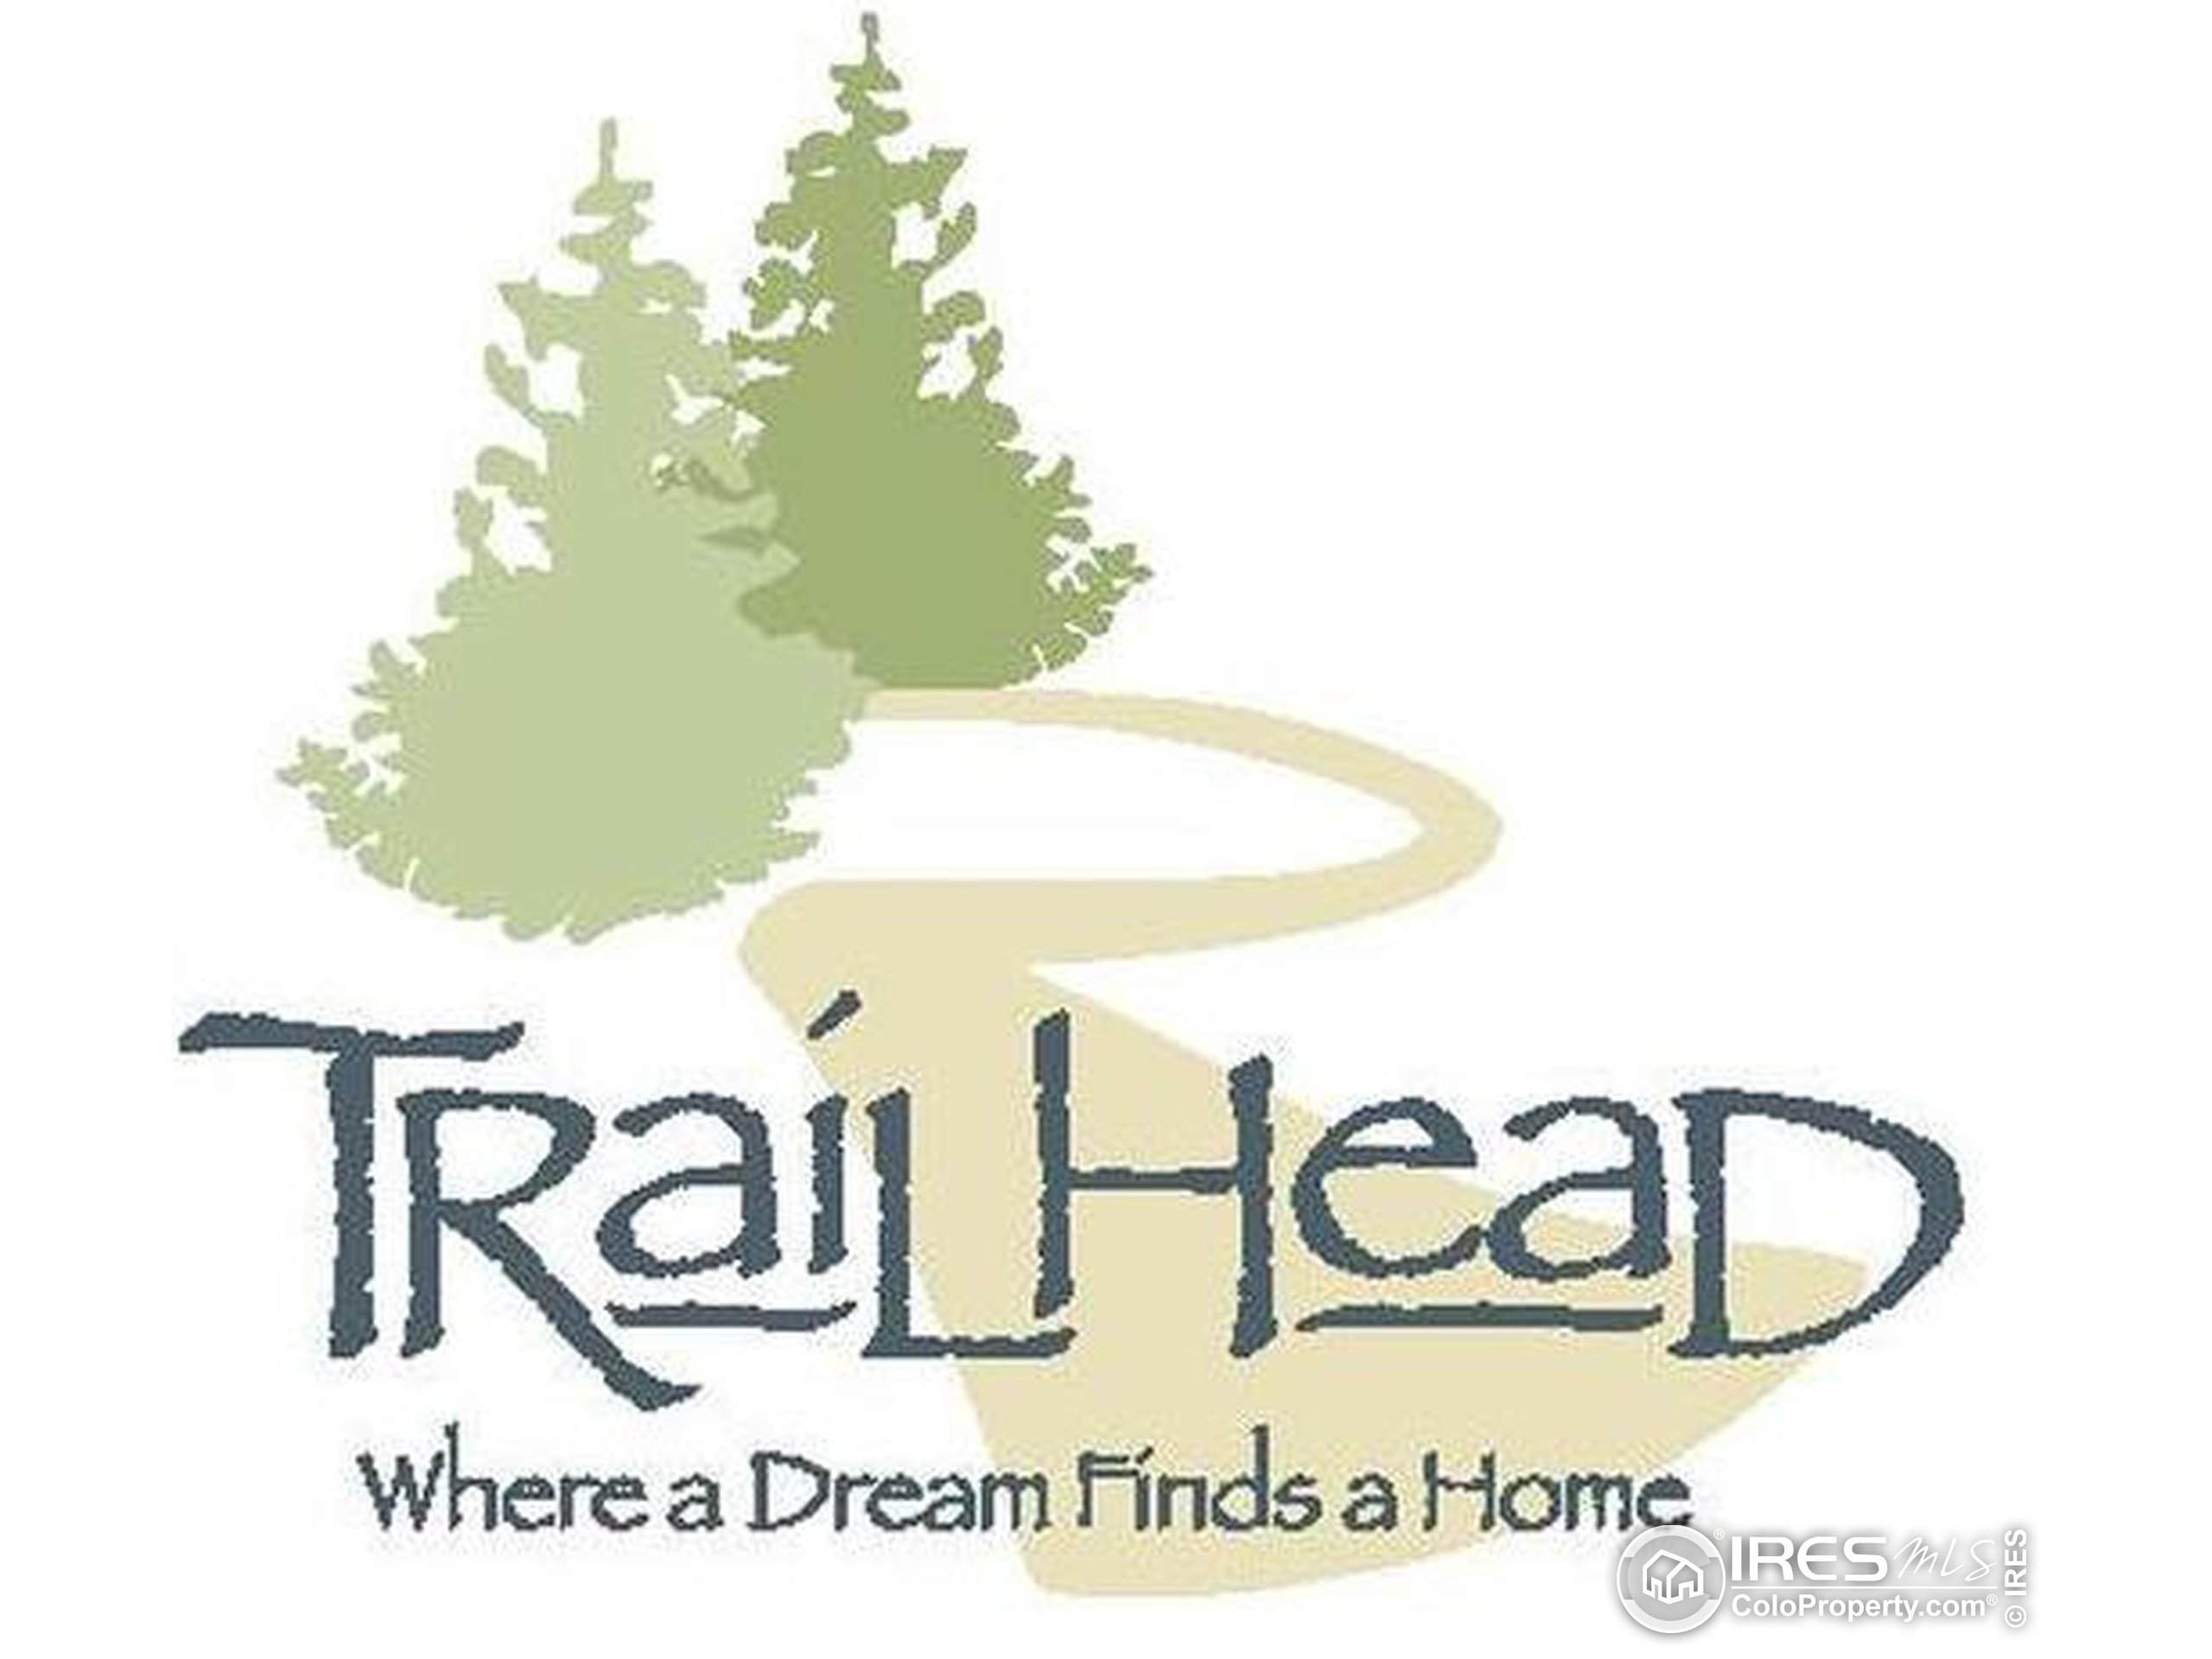 3042 W Yarrow Cir, Superior, CO 80027 (MLS #890833) :: June's Team